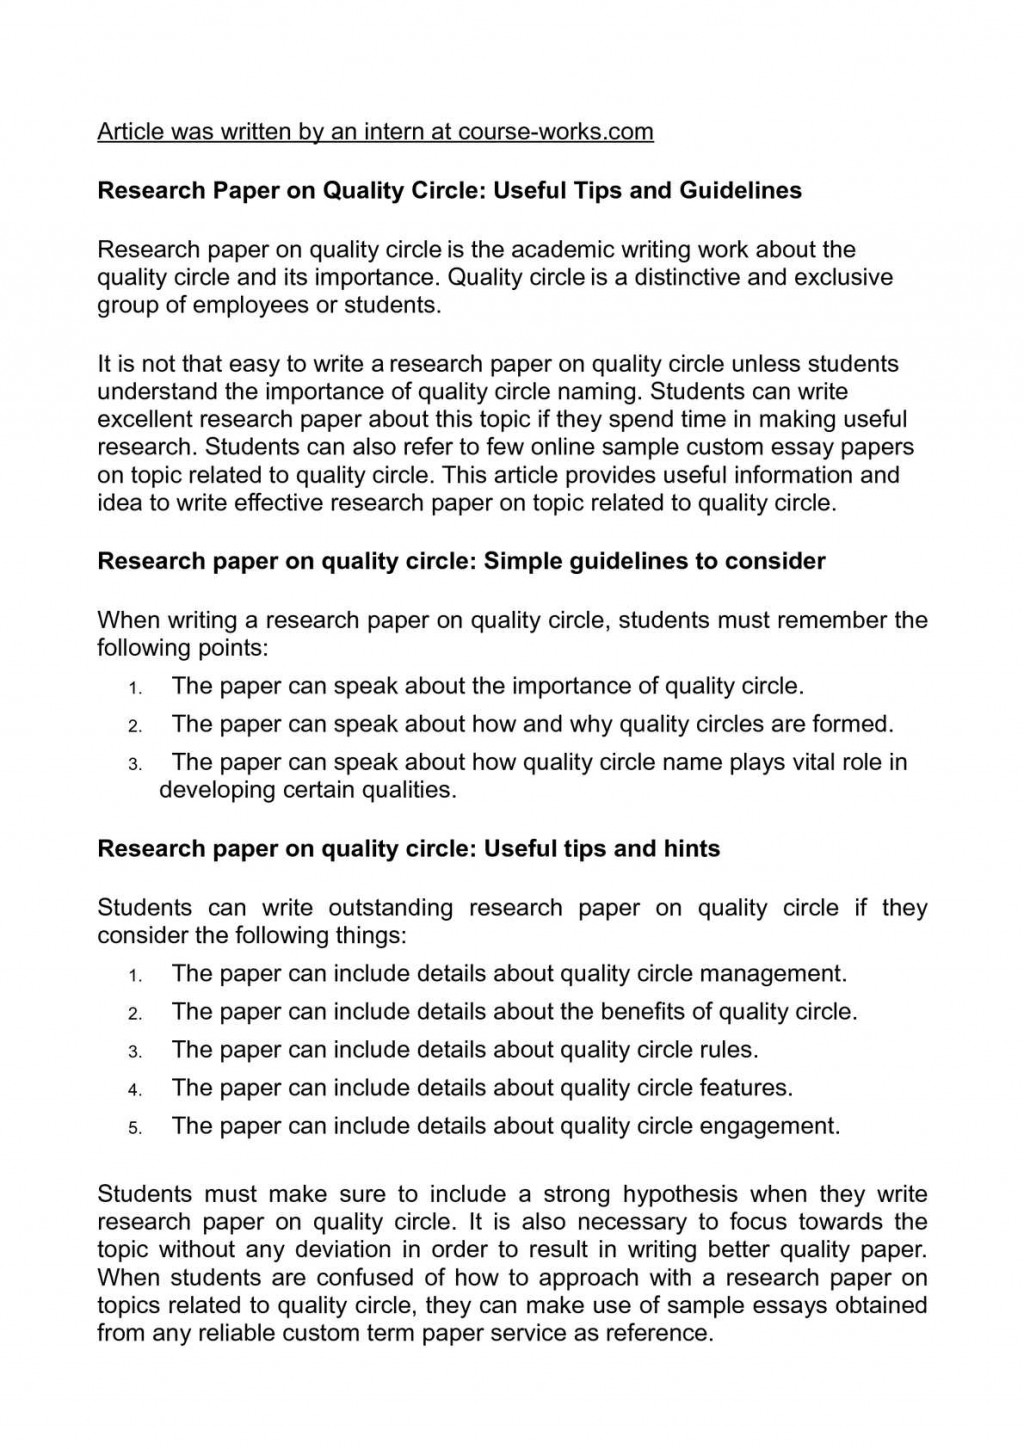 007 P1 Topics To Write Research Paper Beautiful On Good An Argumentative A Biology Economics Large